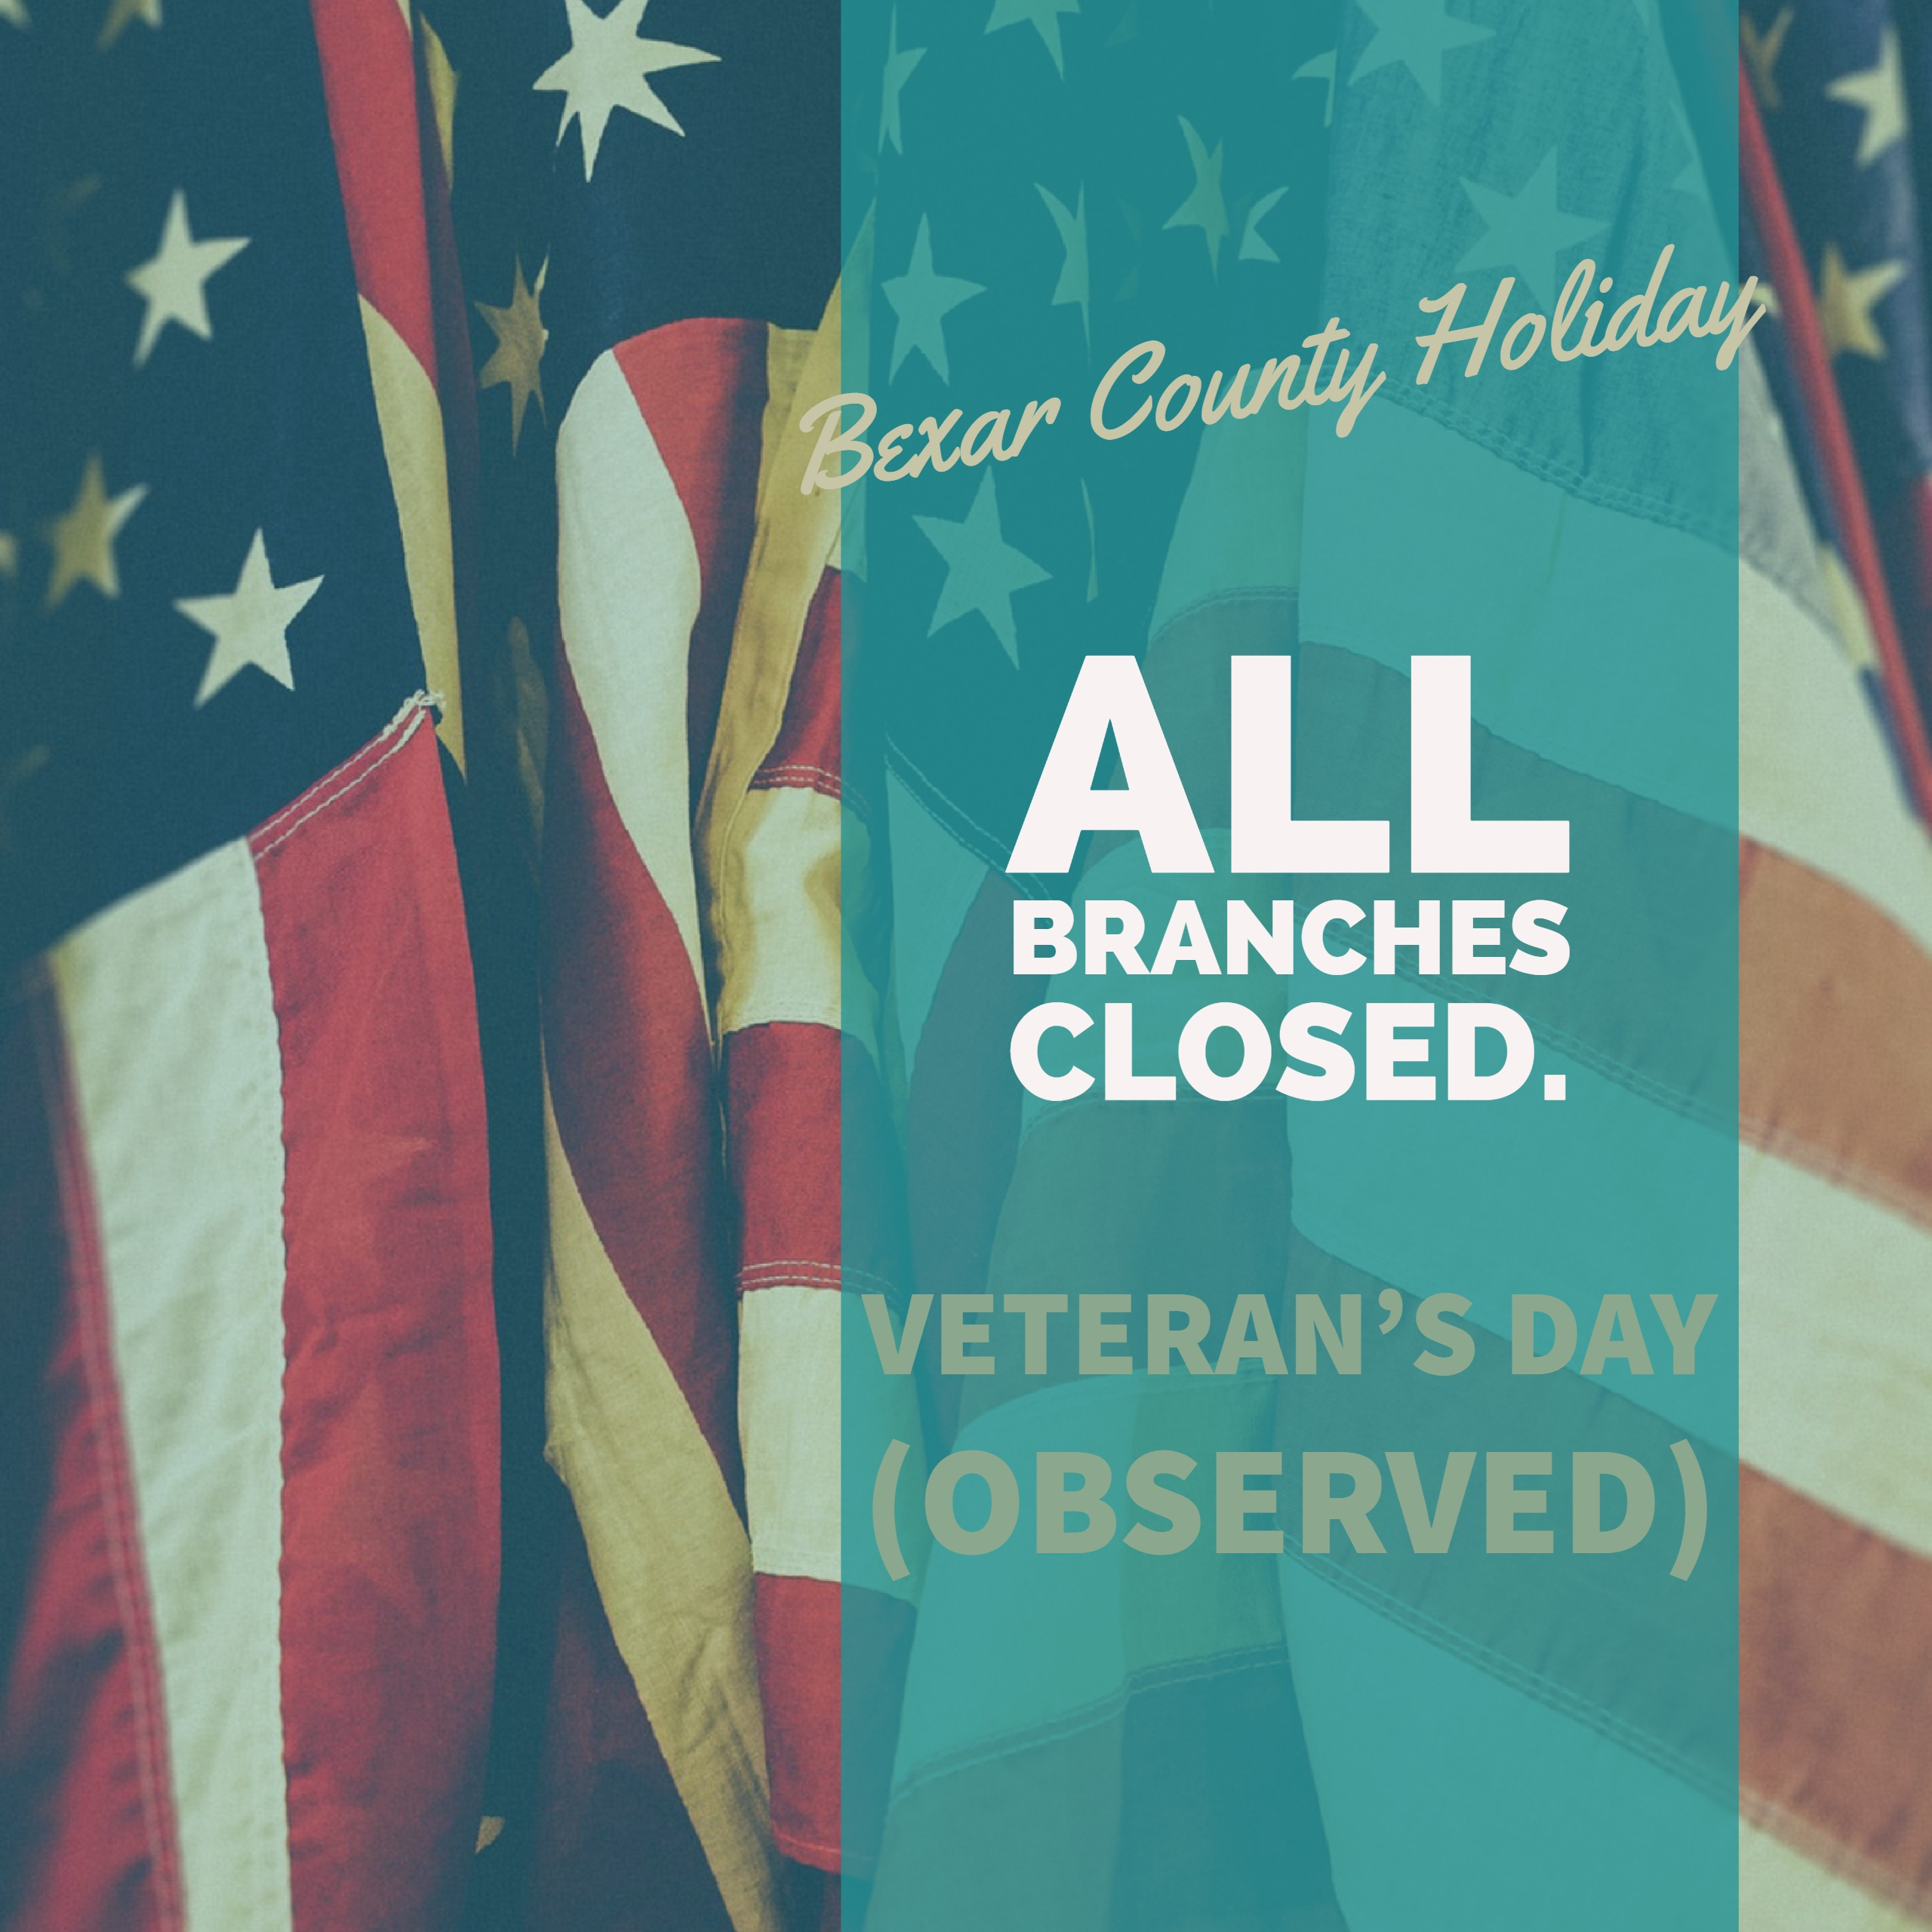 Veteran's Day Closure Message